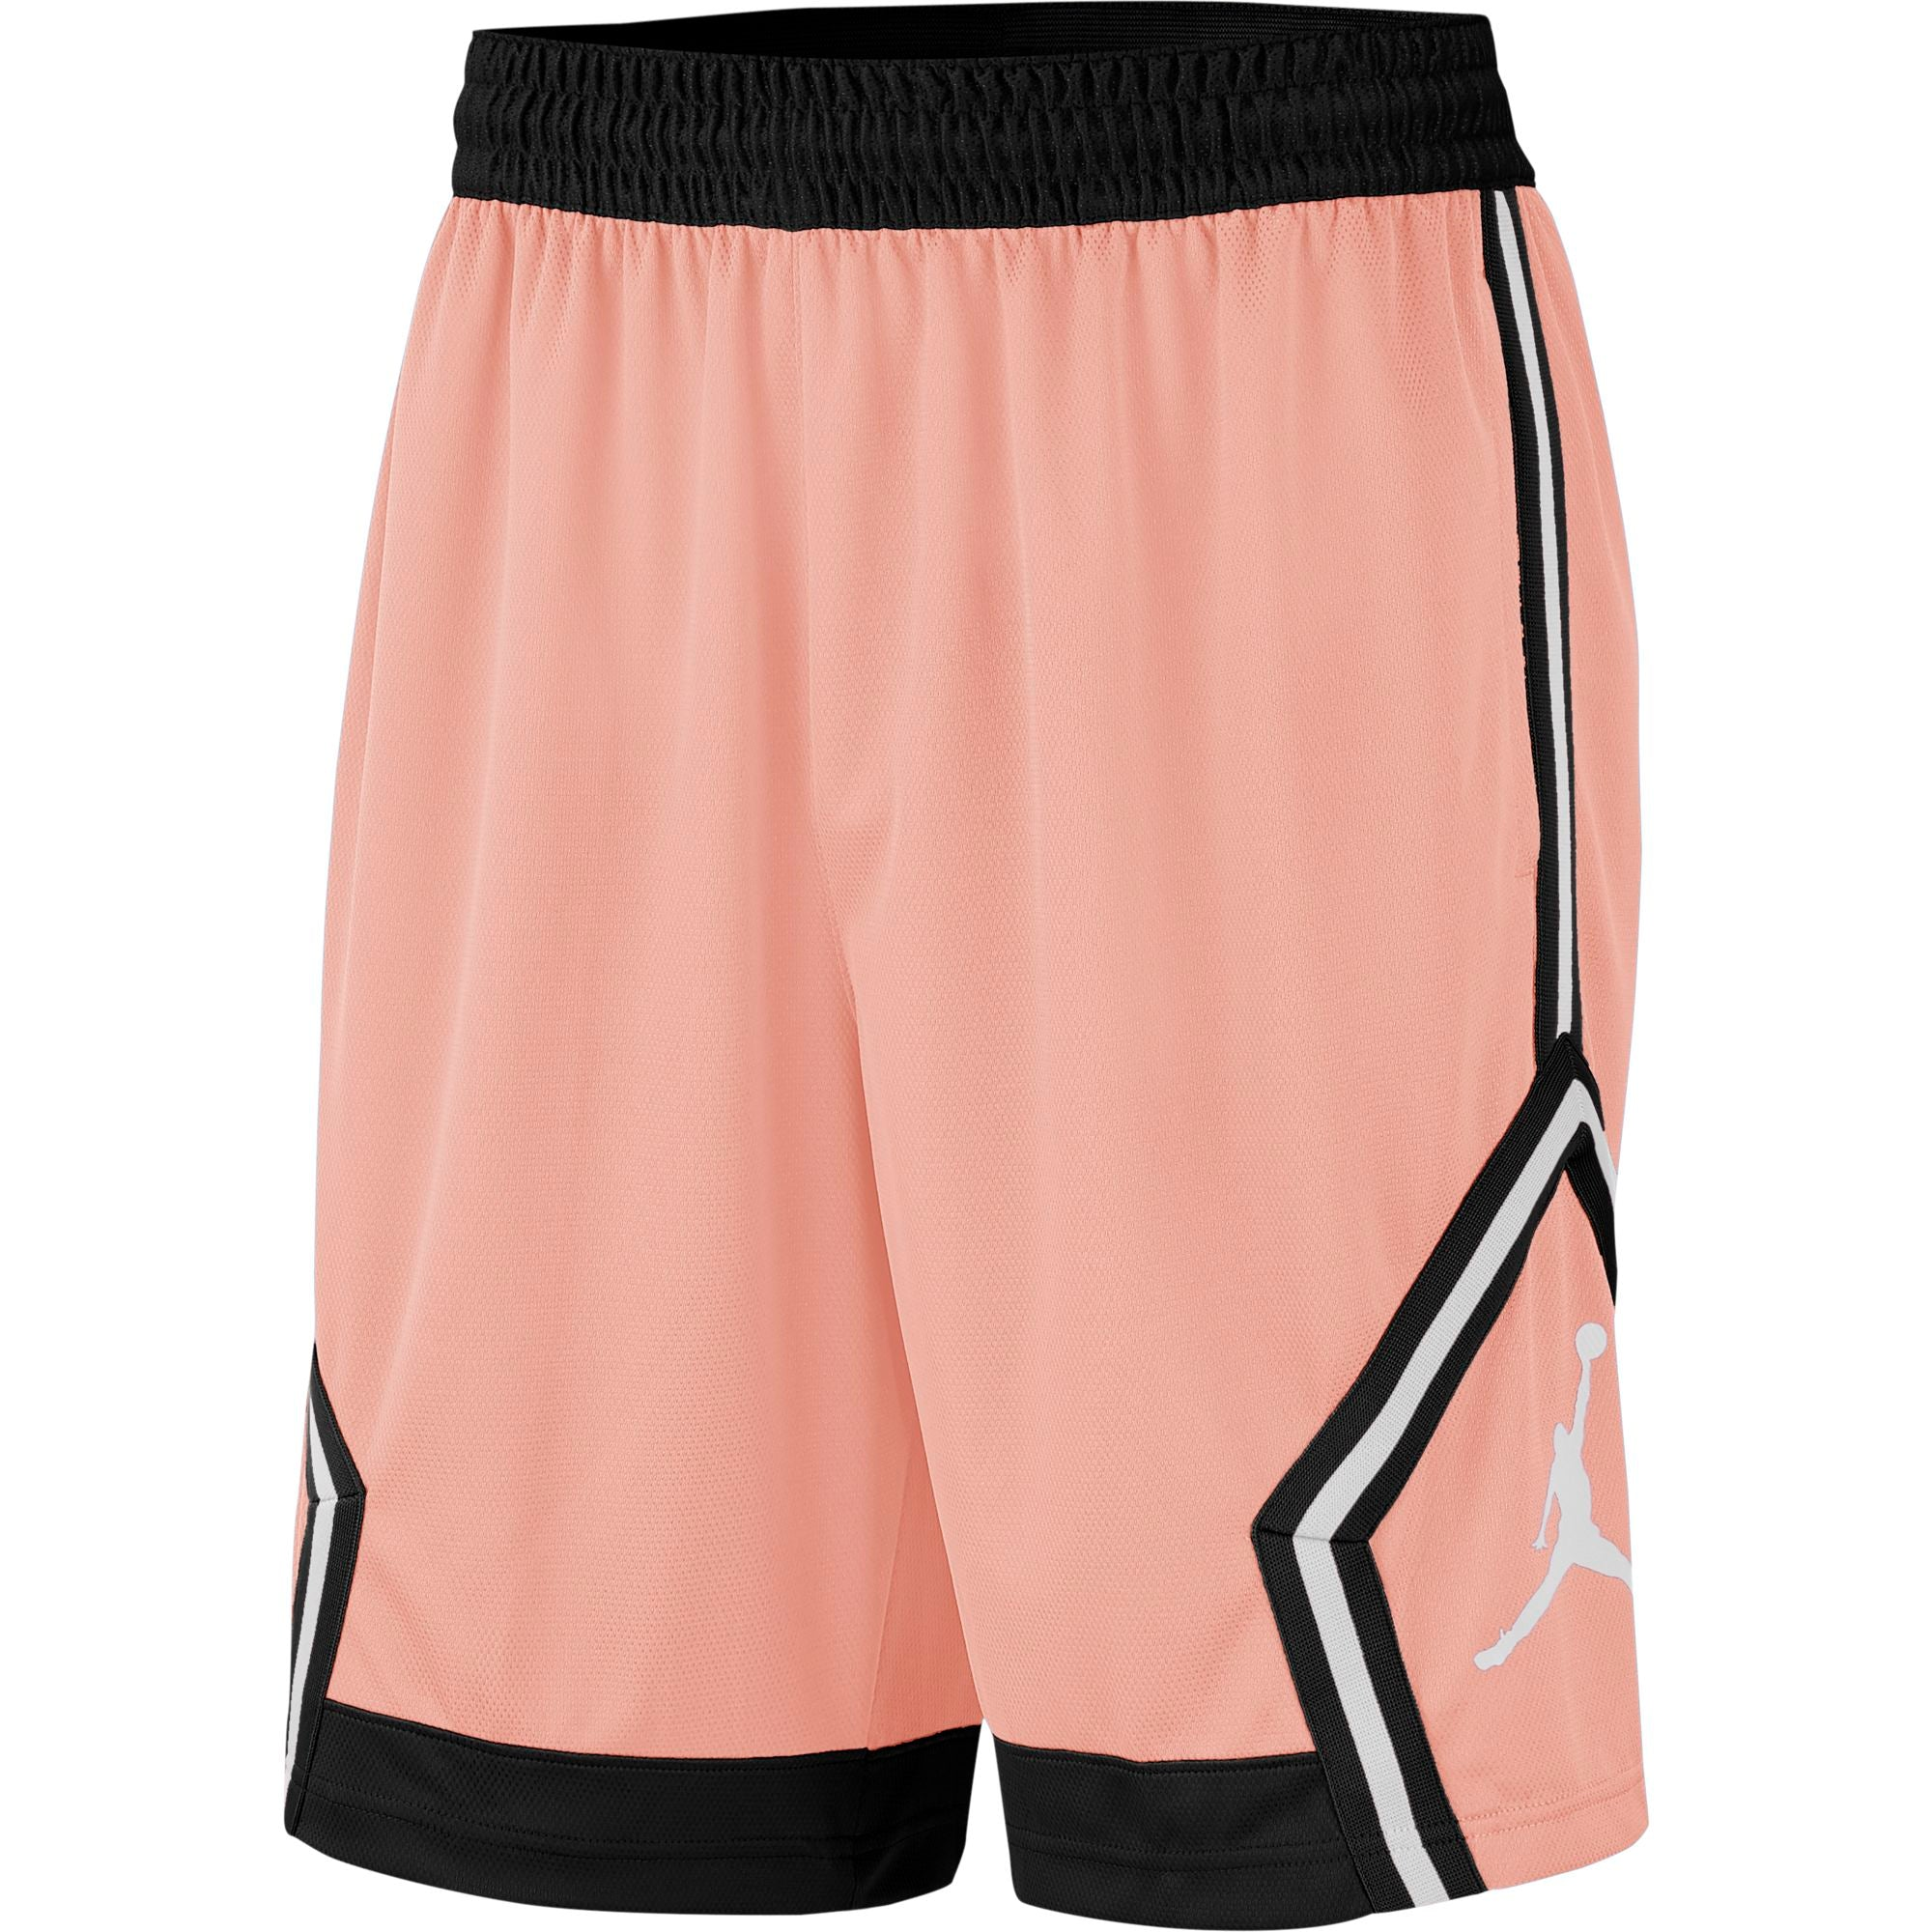 Nike Jordan Jumpman Diamond Basketball Shorts - NK-AV5019-623